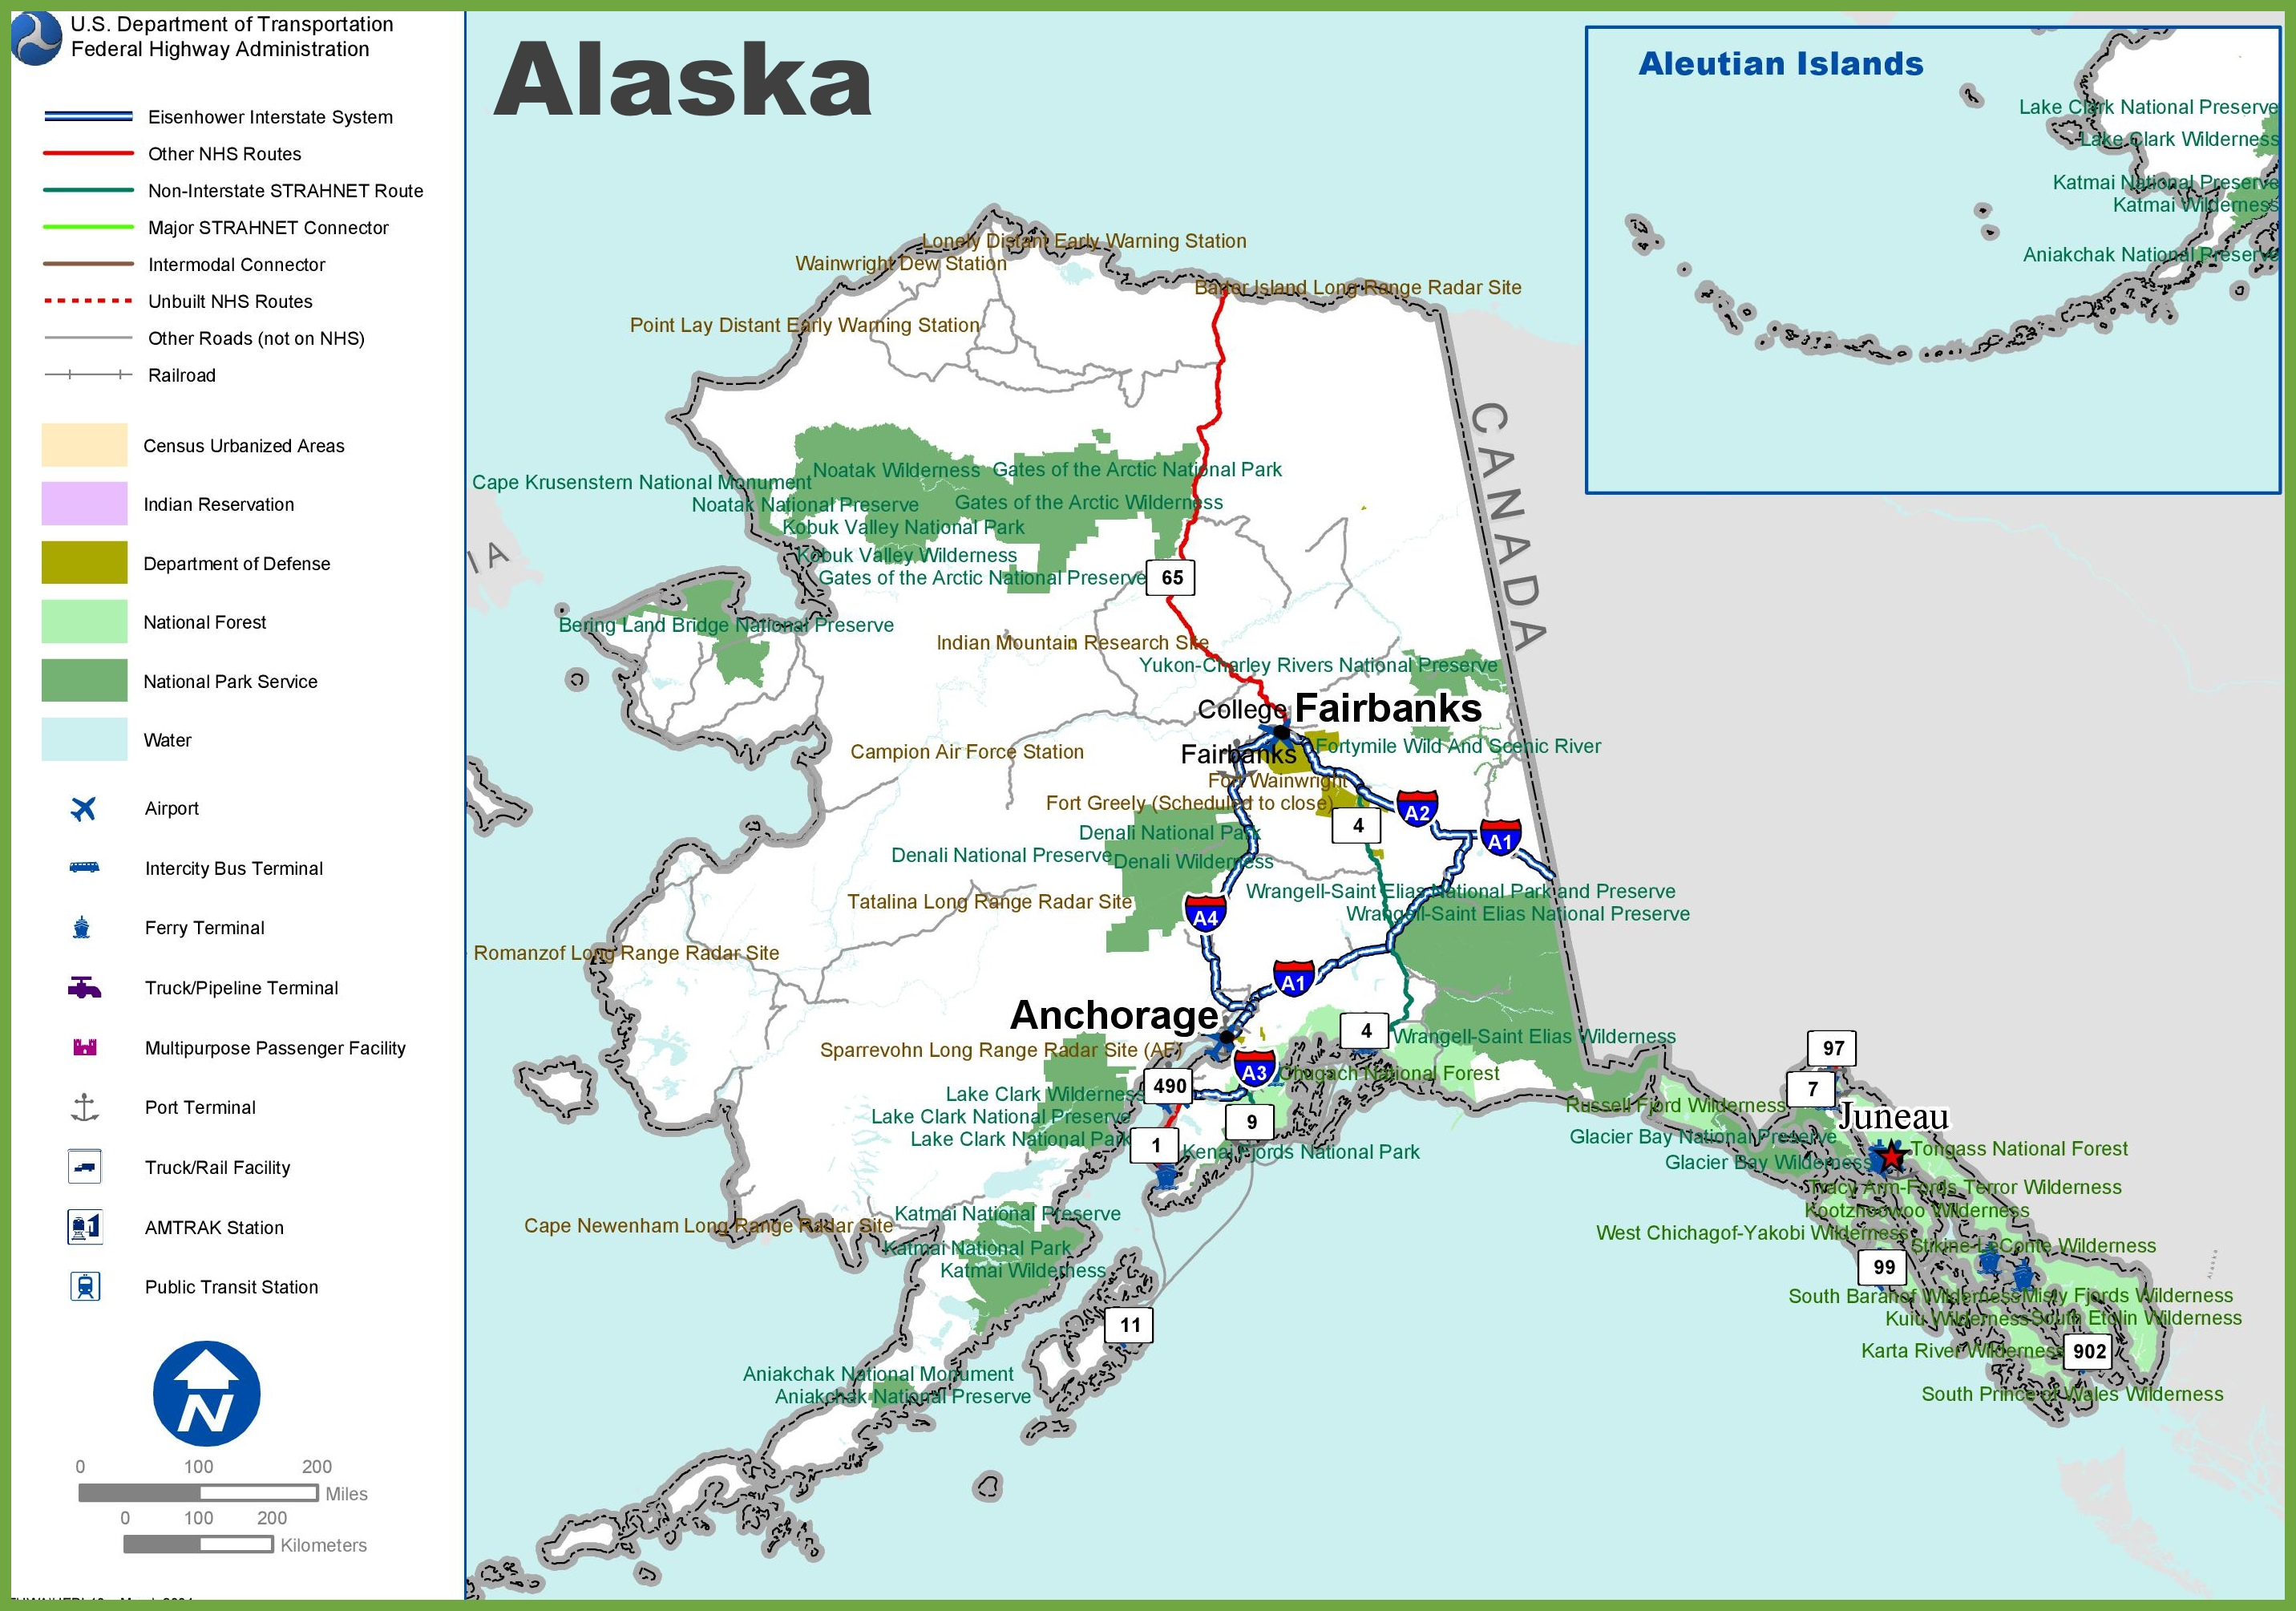 Alaska highway map alaska highway map gumiabroncs Choice Image